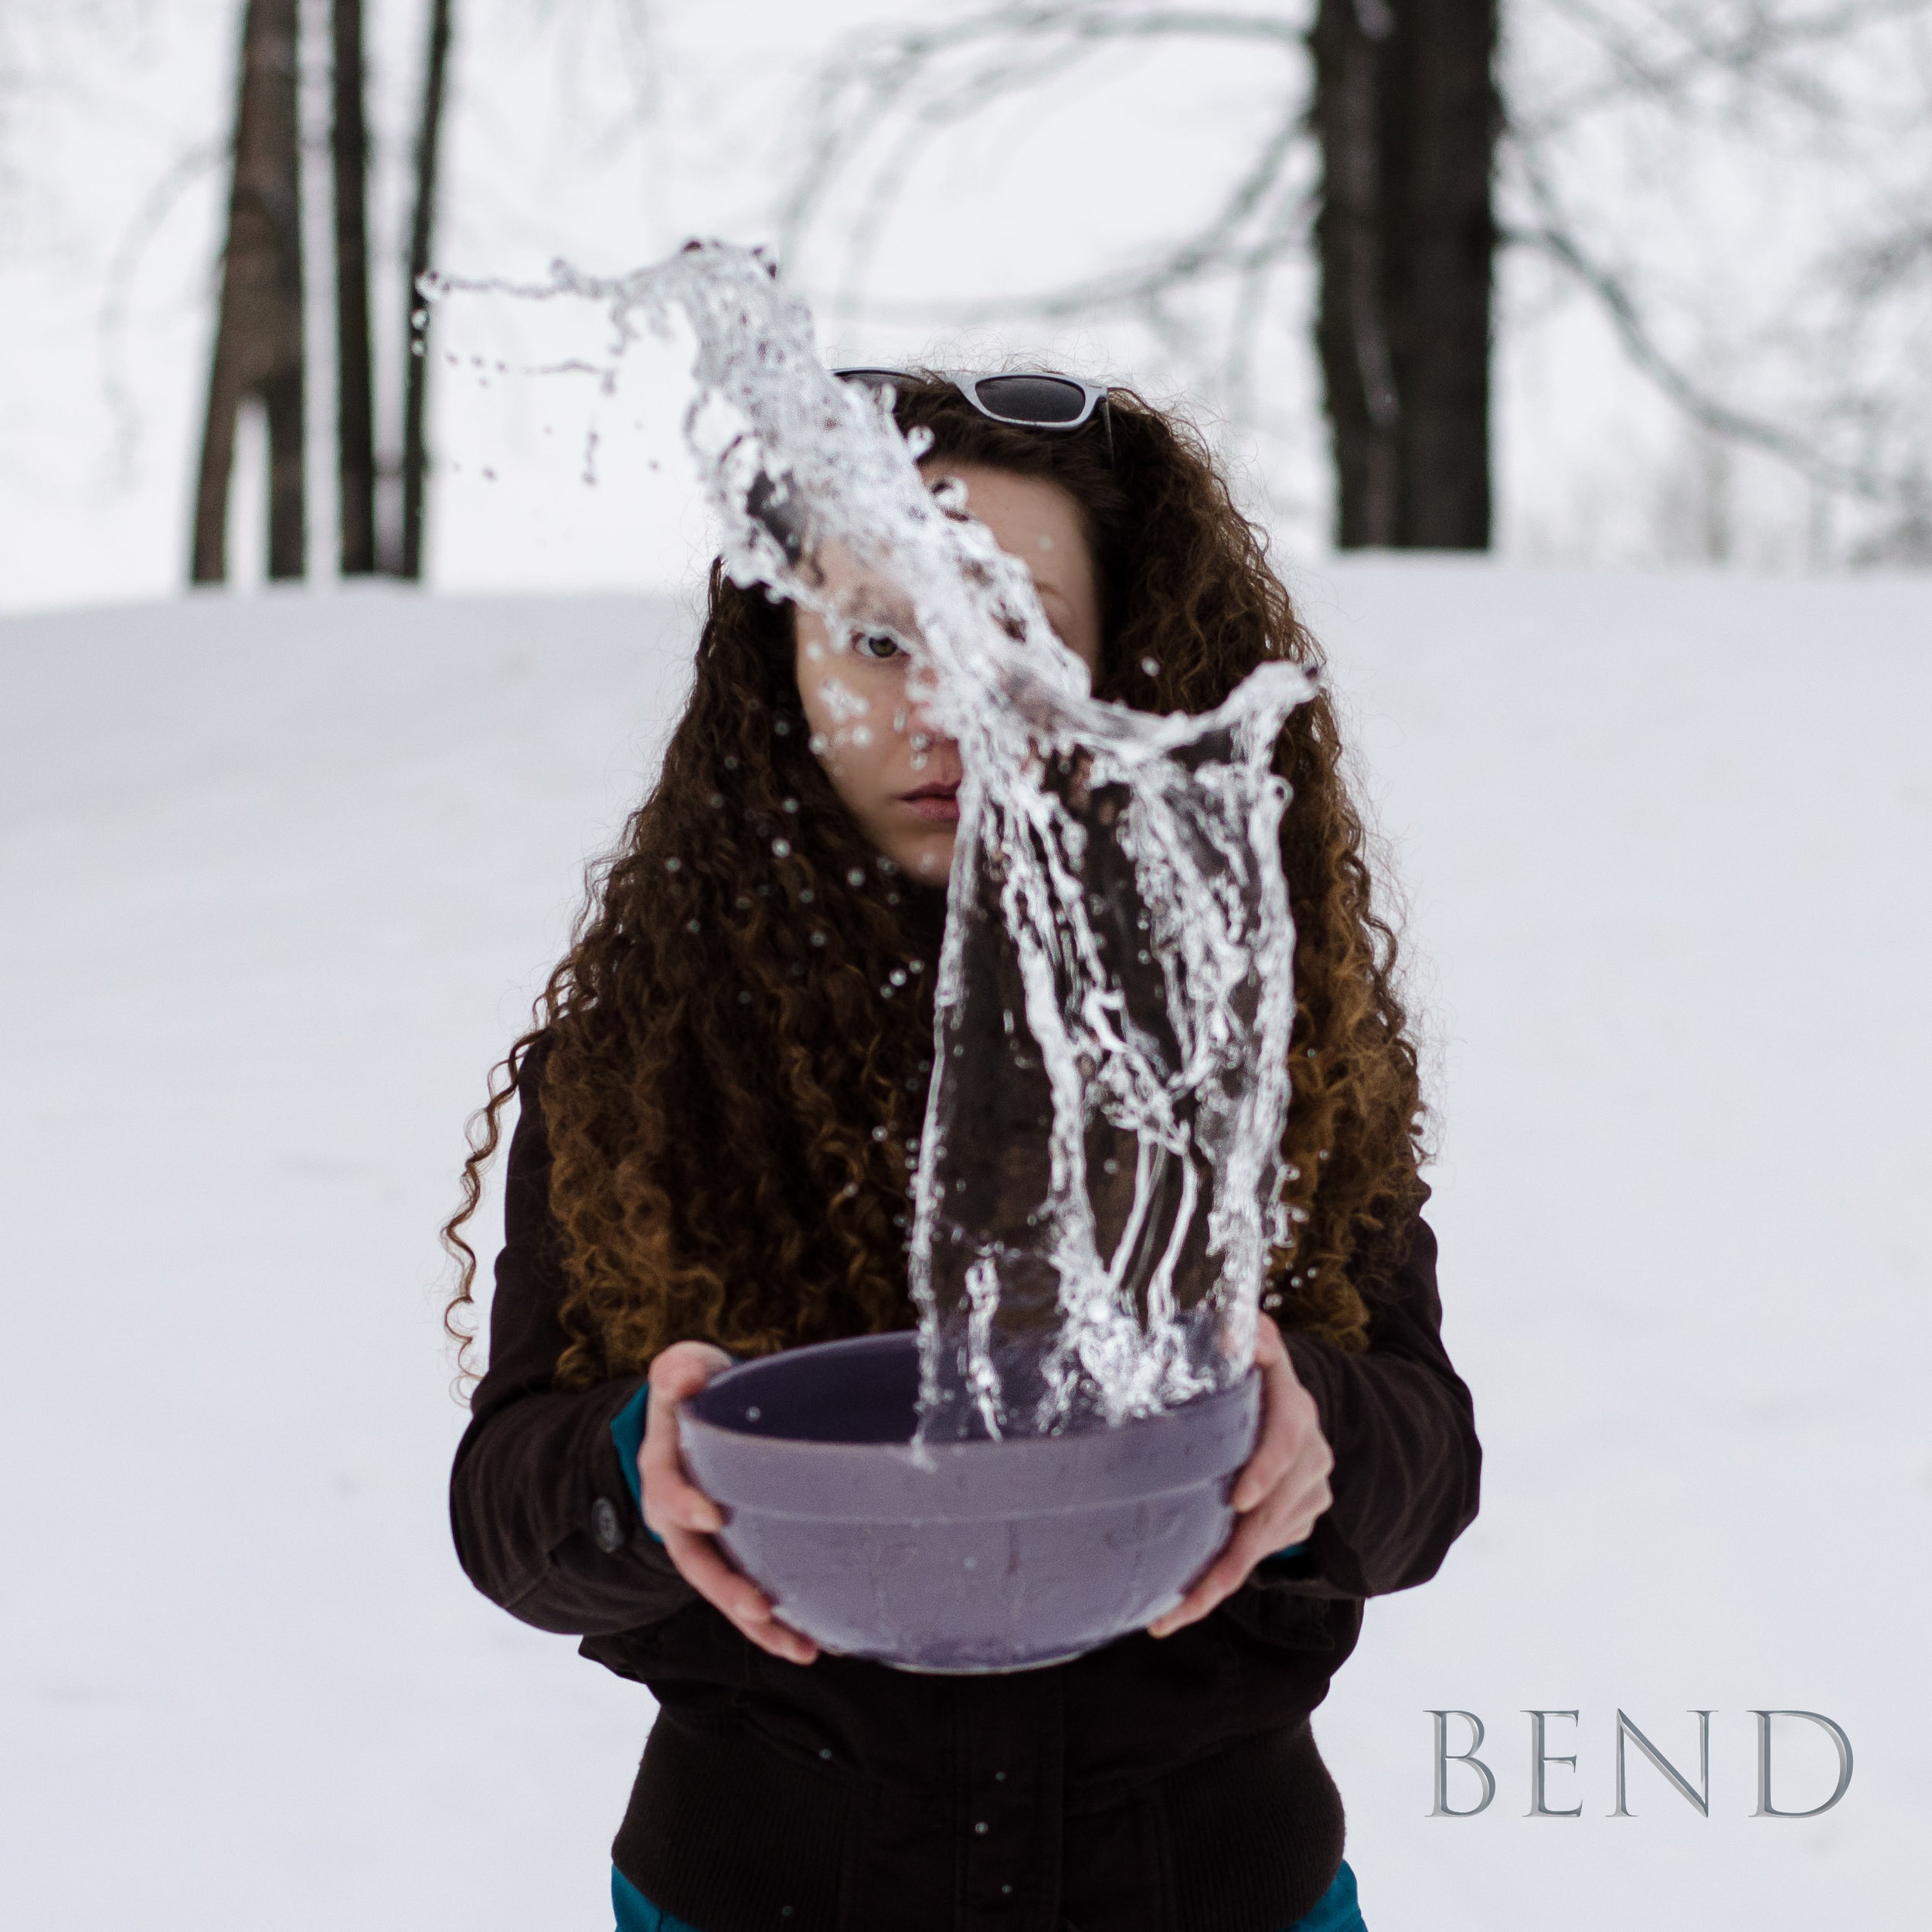 Bend Cover Image.jpg